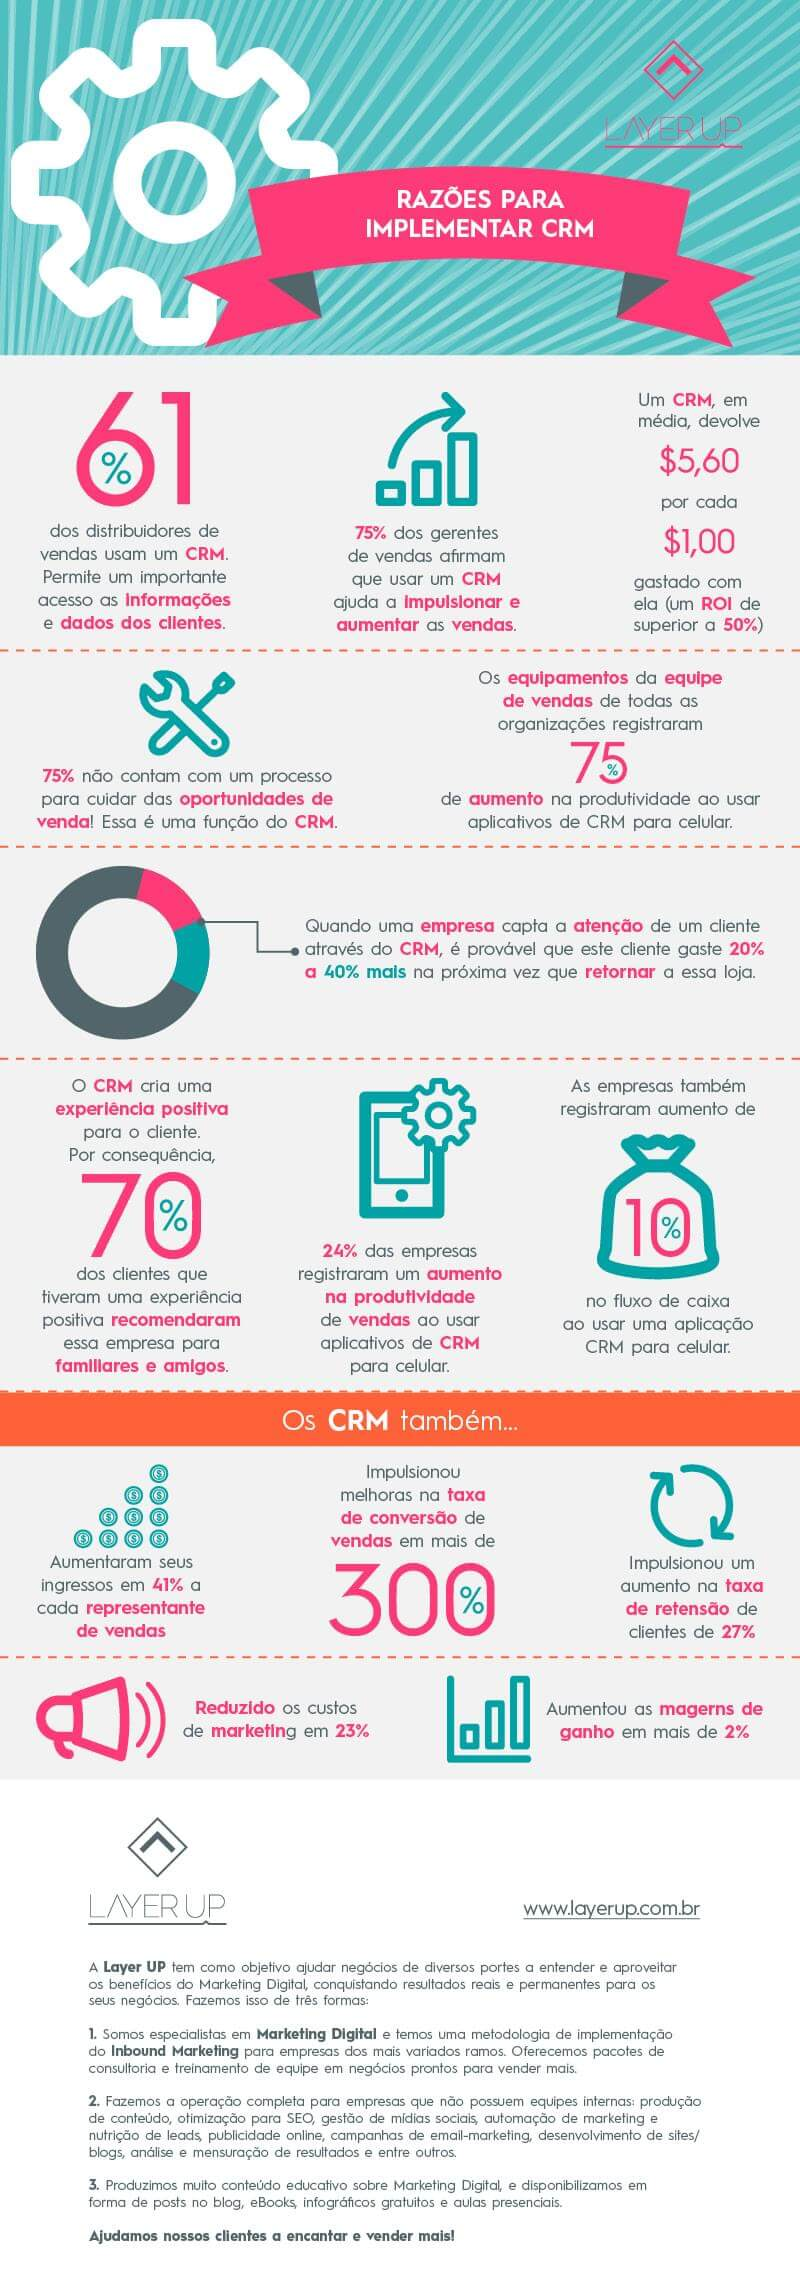 Layer up marketing crm infográfico agência marketing digital